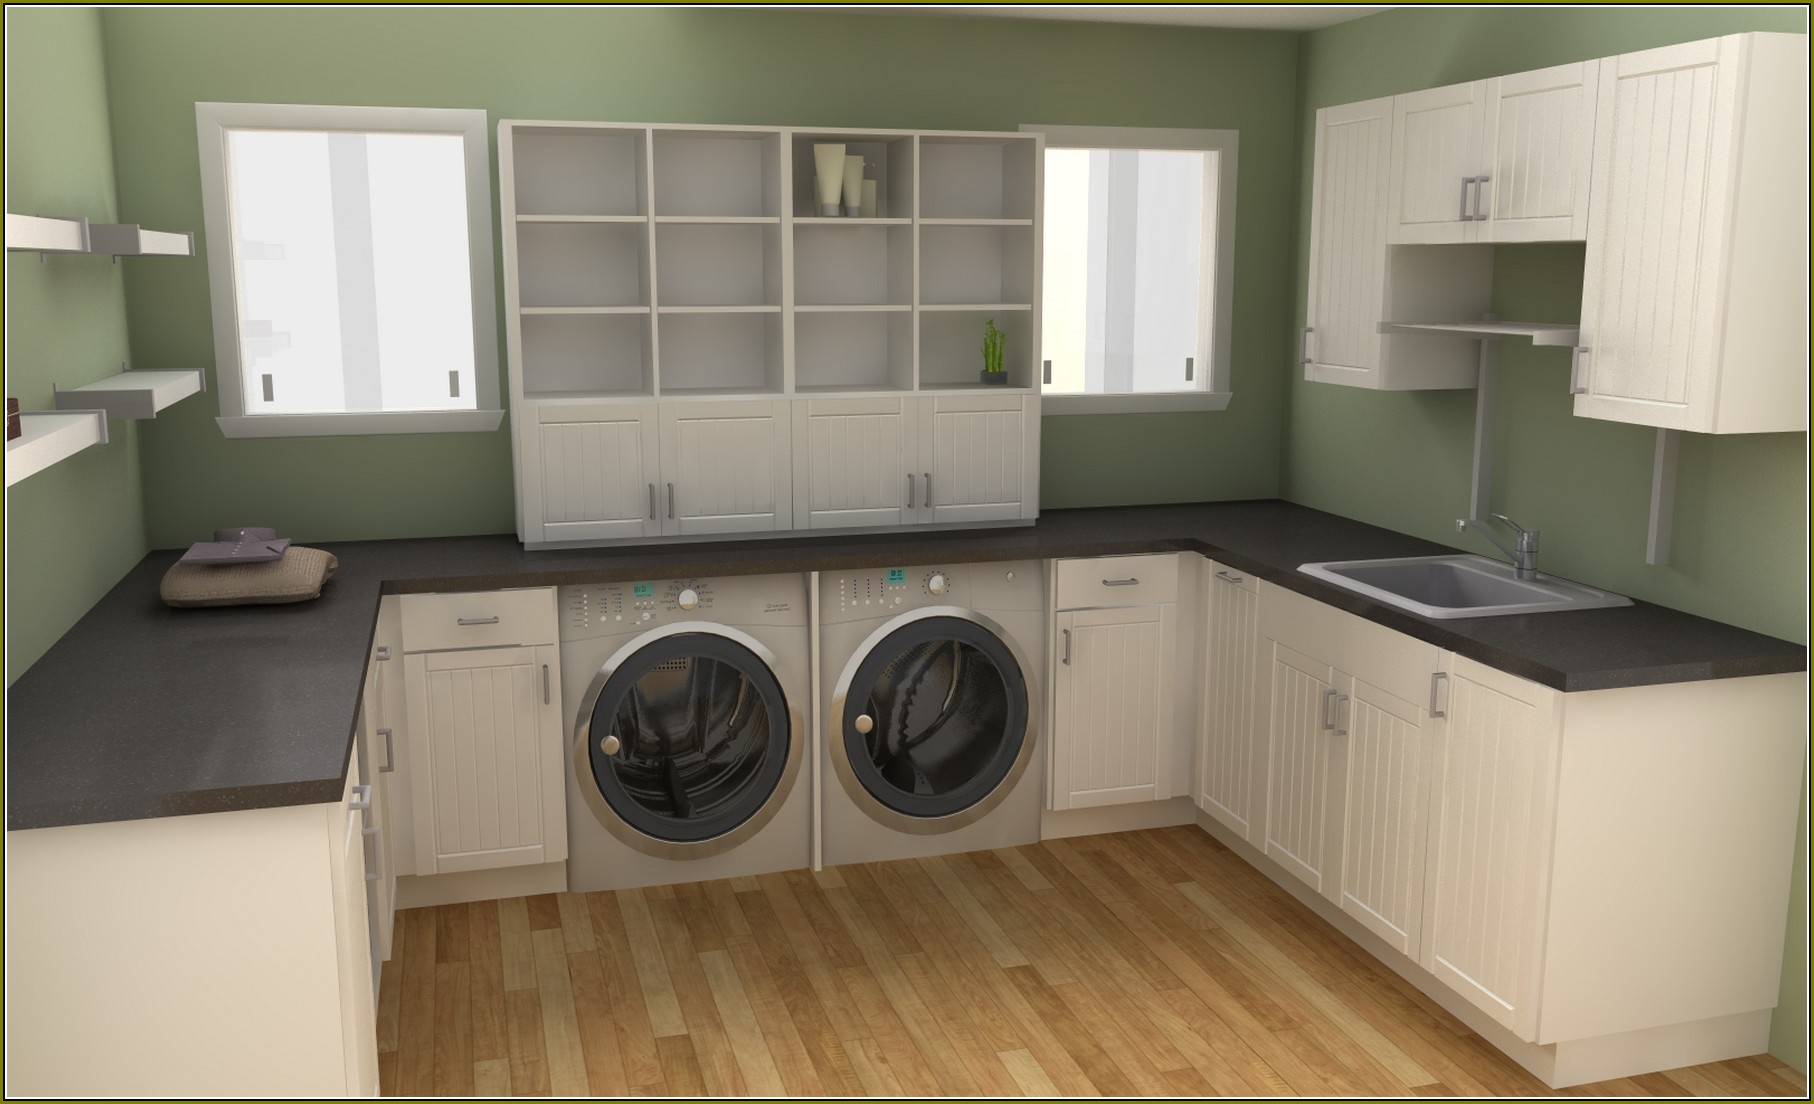 Kitchen Utility Room Ideas 5 Dirty Little Secrets For A Great Ikea Laundry Room Design